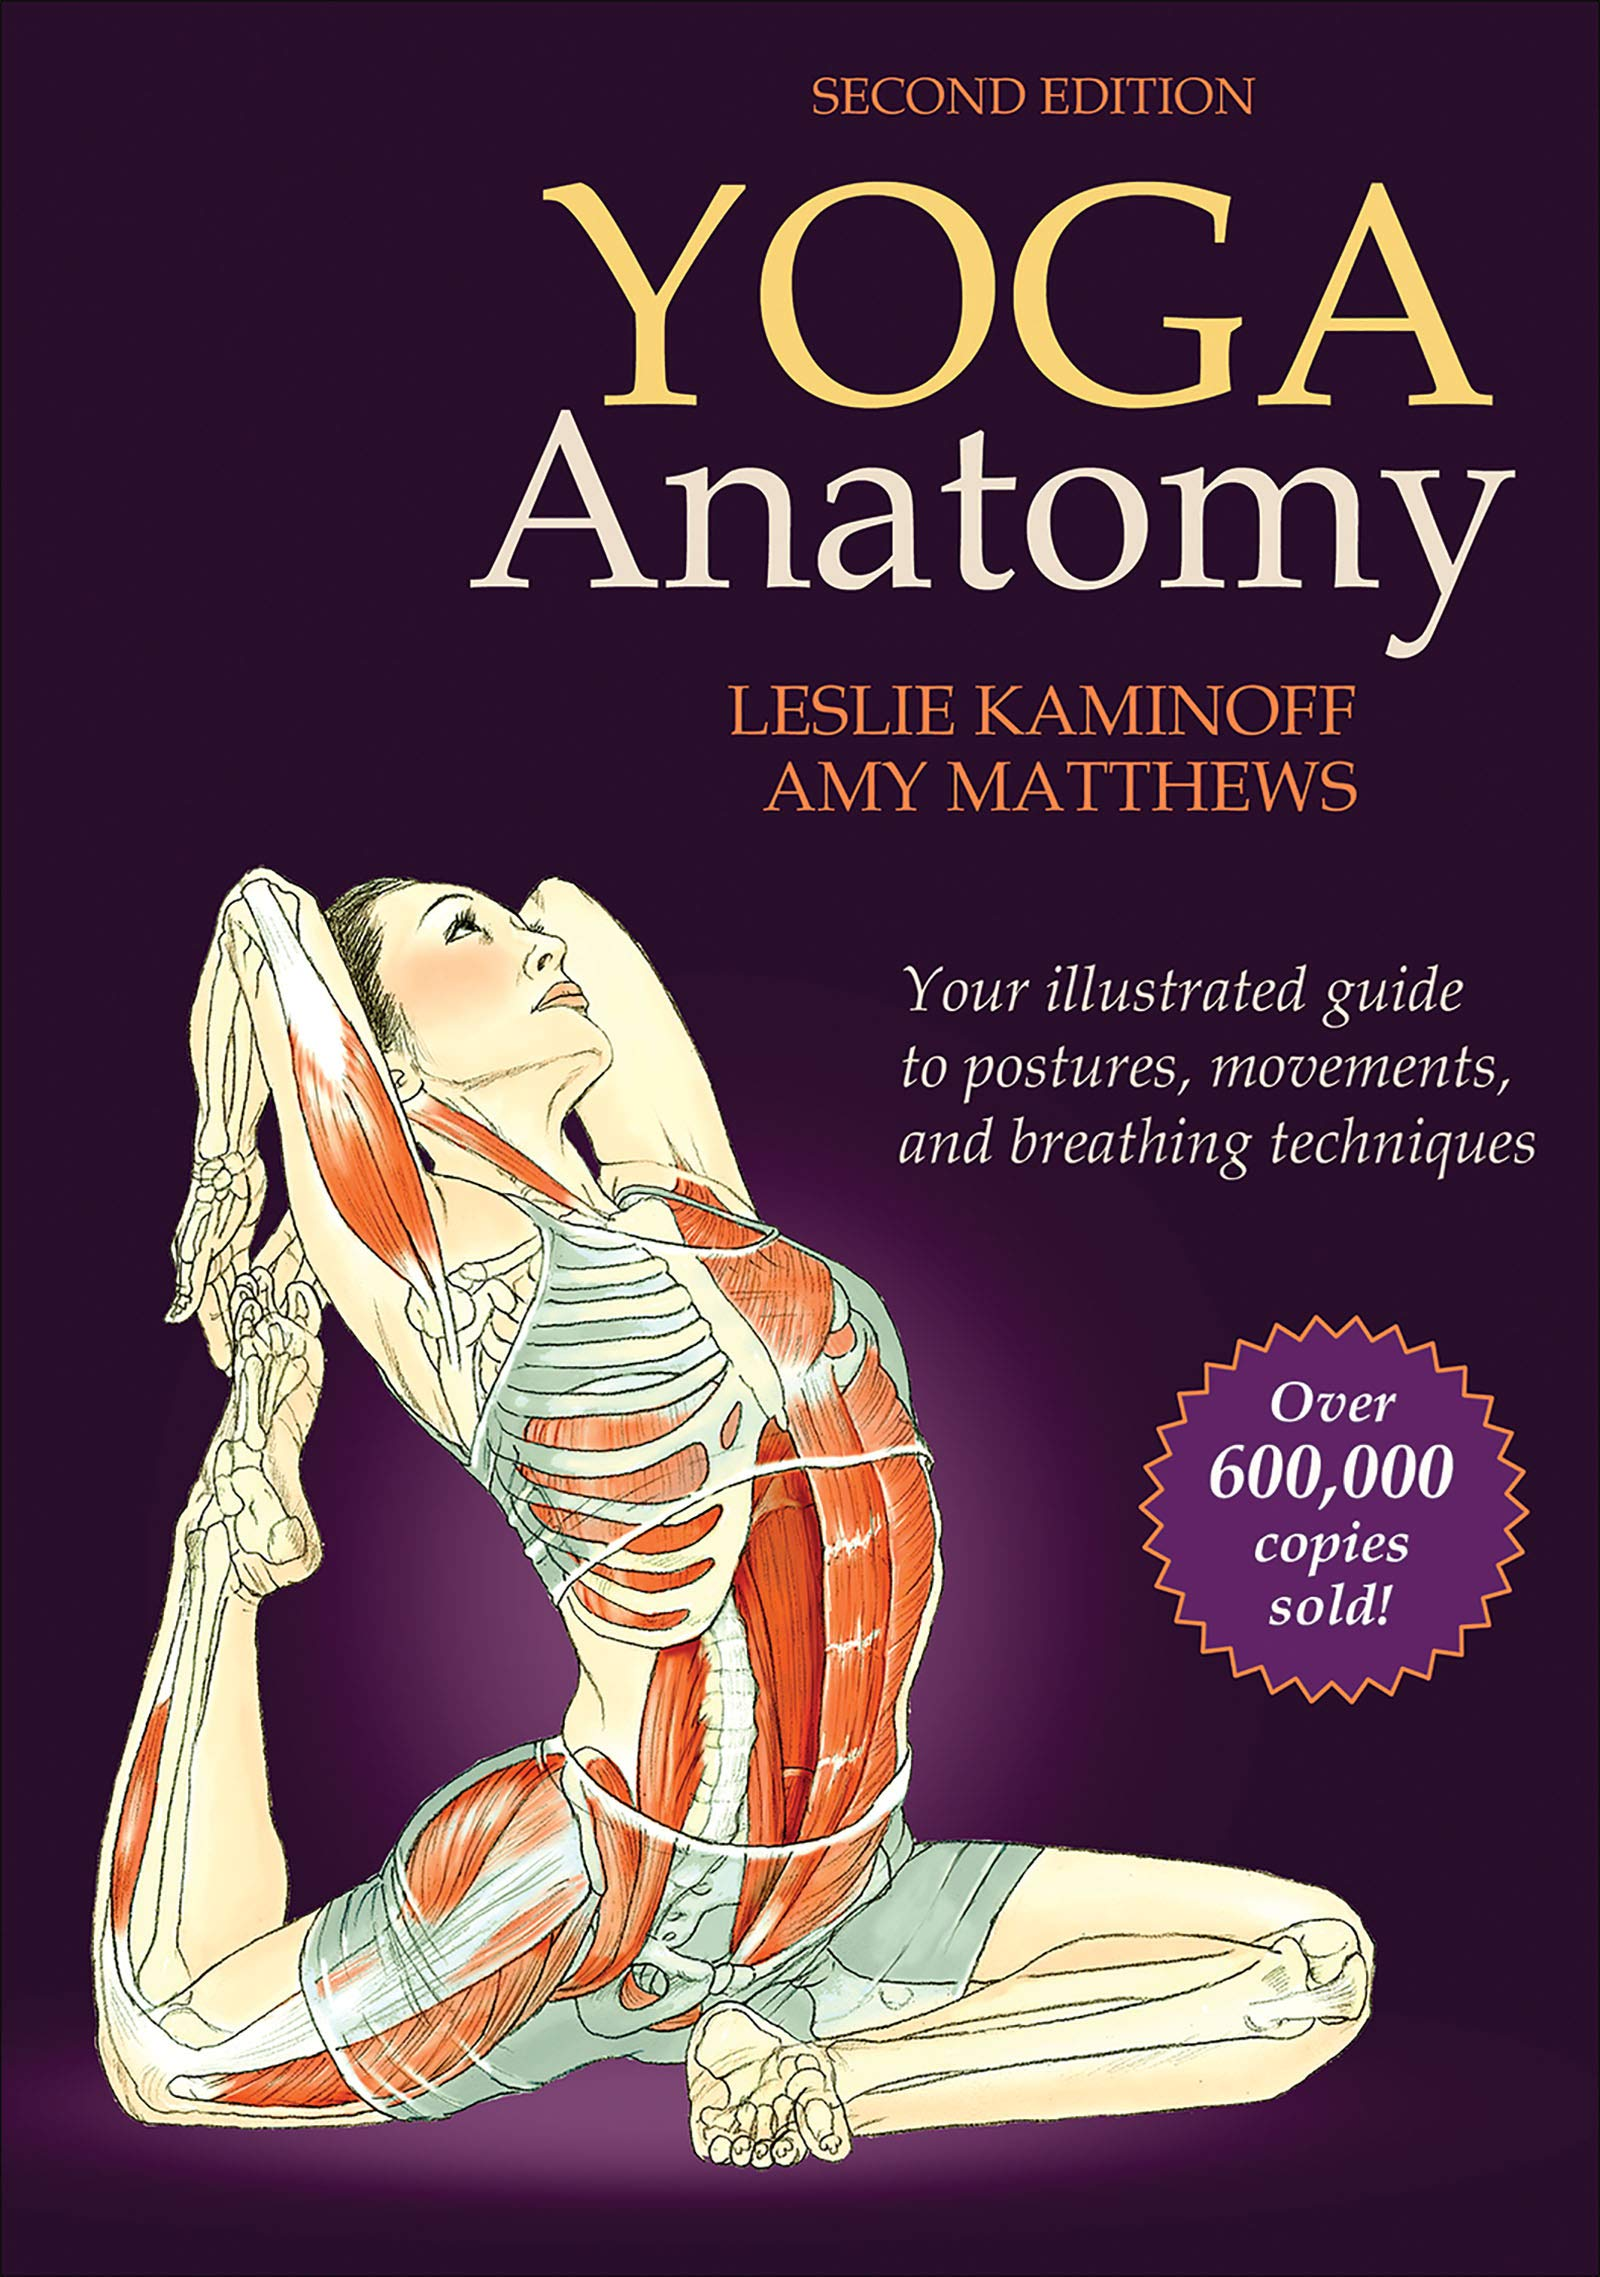 Yoga Anatomy-2nd Edition: Leslie Kaminoff, Amy Matthews ...